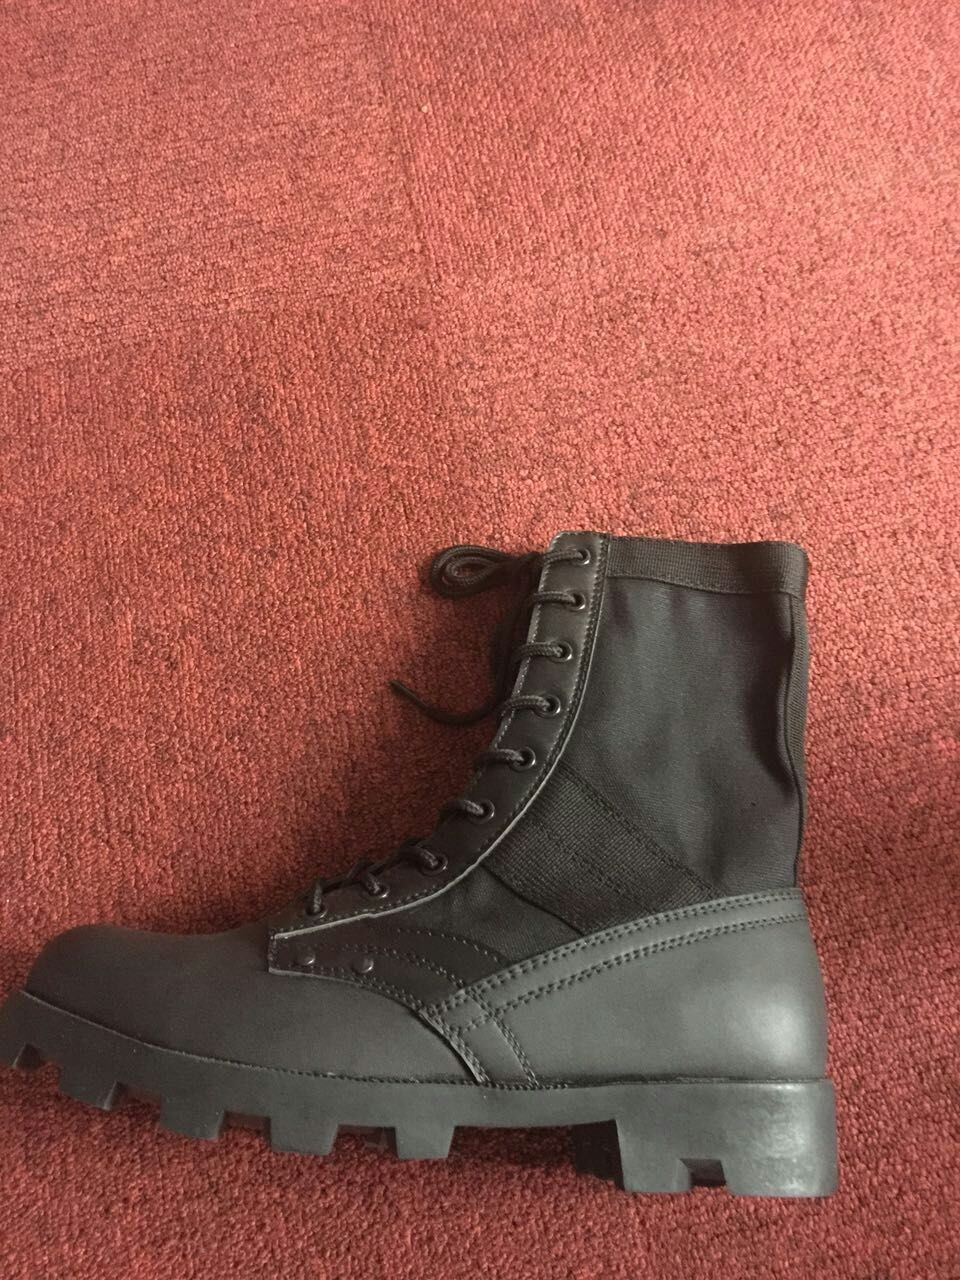 American style military army boots panama combat boots